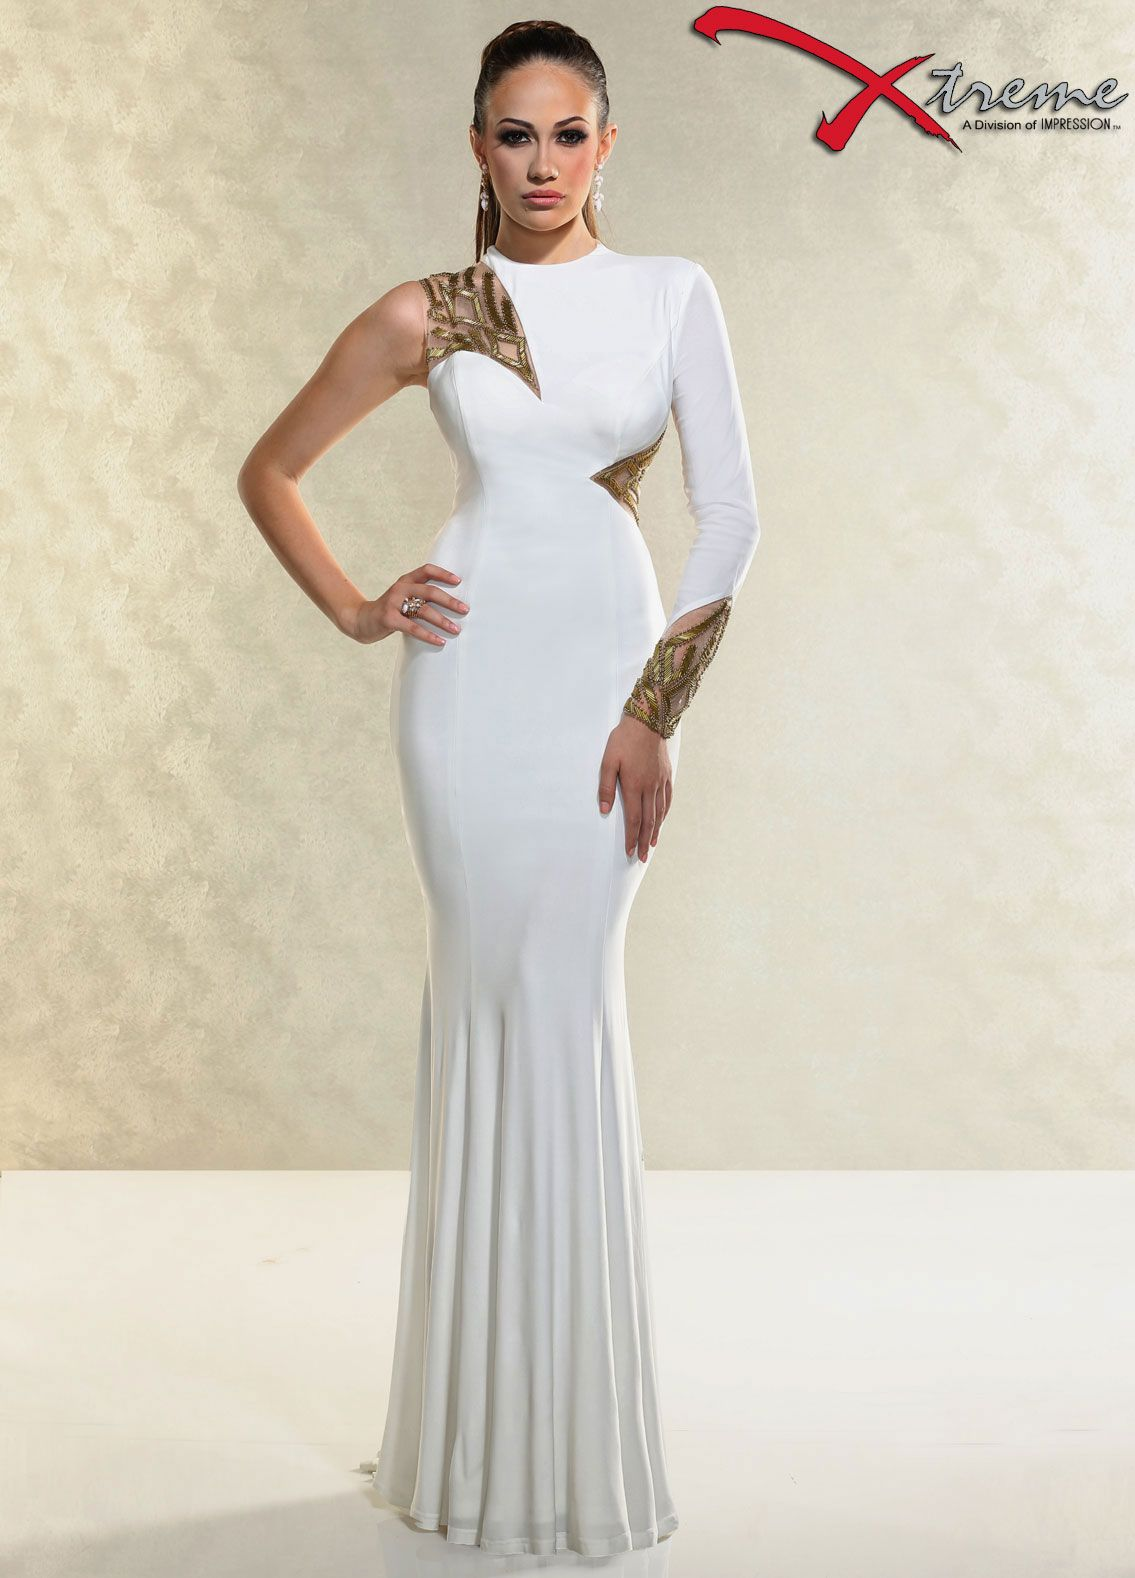 Worn on the red carpet by carrie underwood xtreme prom dress worn on the red carpet by carrie underwood xtreme prom dress pageant dress junglespirit Choice Image